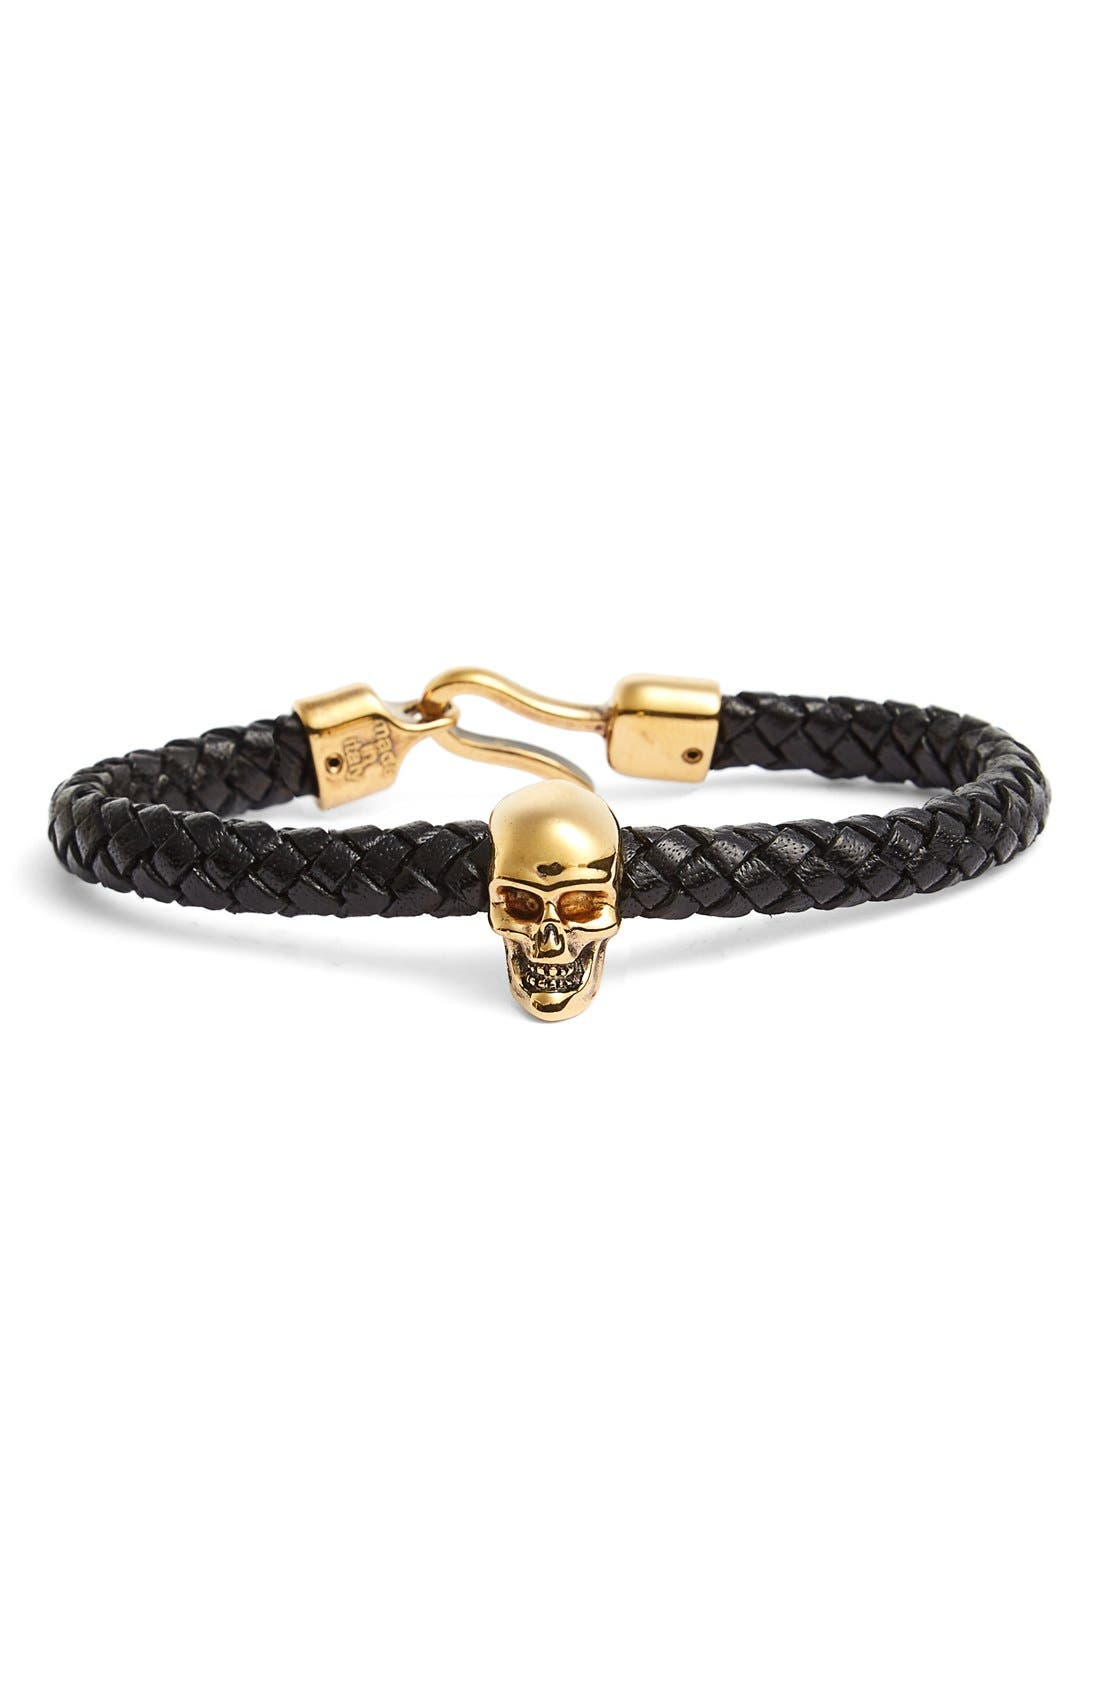 Alternate Image 1 Selected - Alexander McQueen Braided Leather Bracelet with Skull